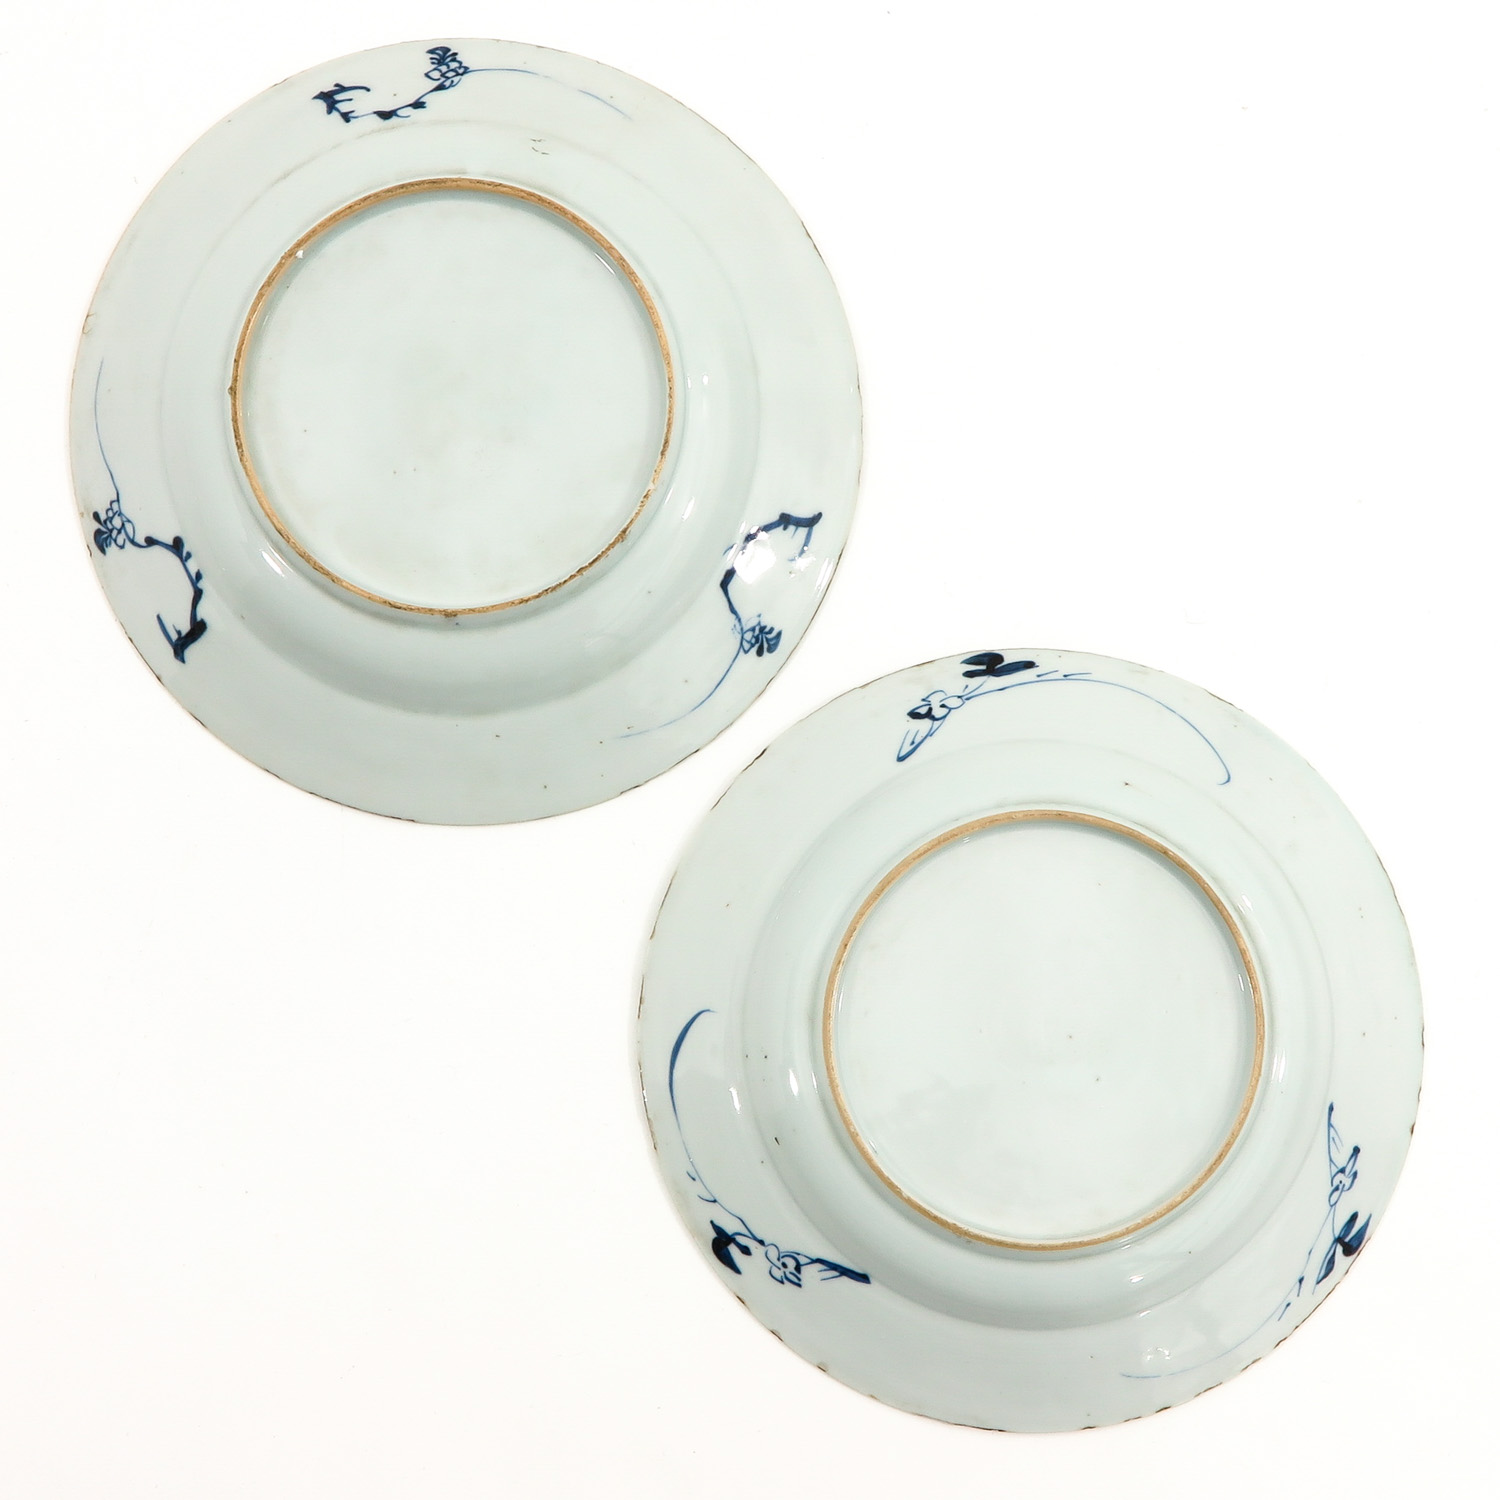 A Series of 5 Blue and White Plates - Image 6 of 10